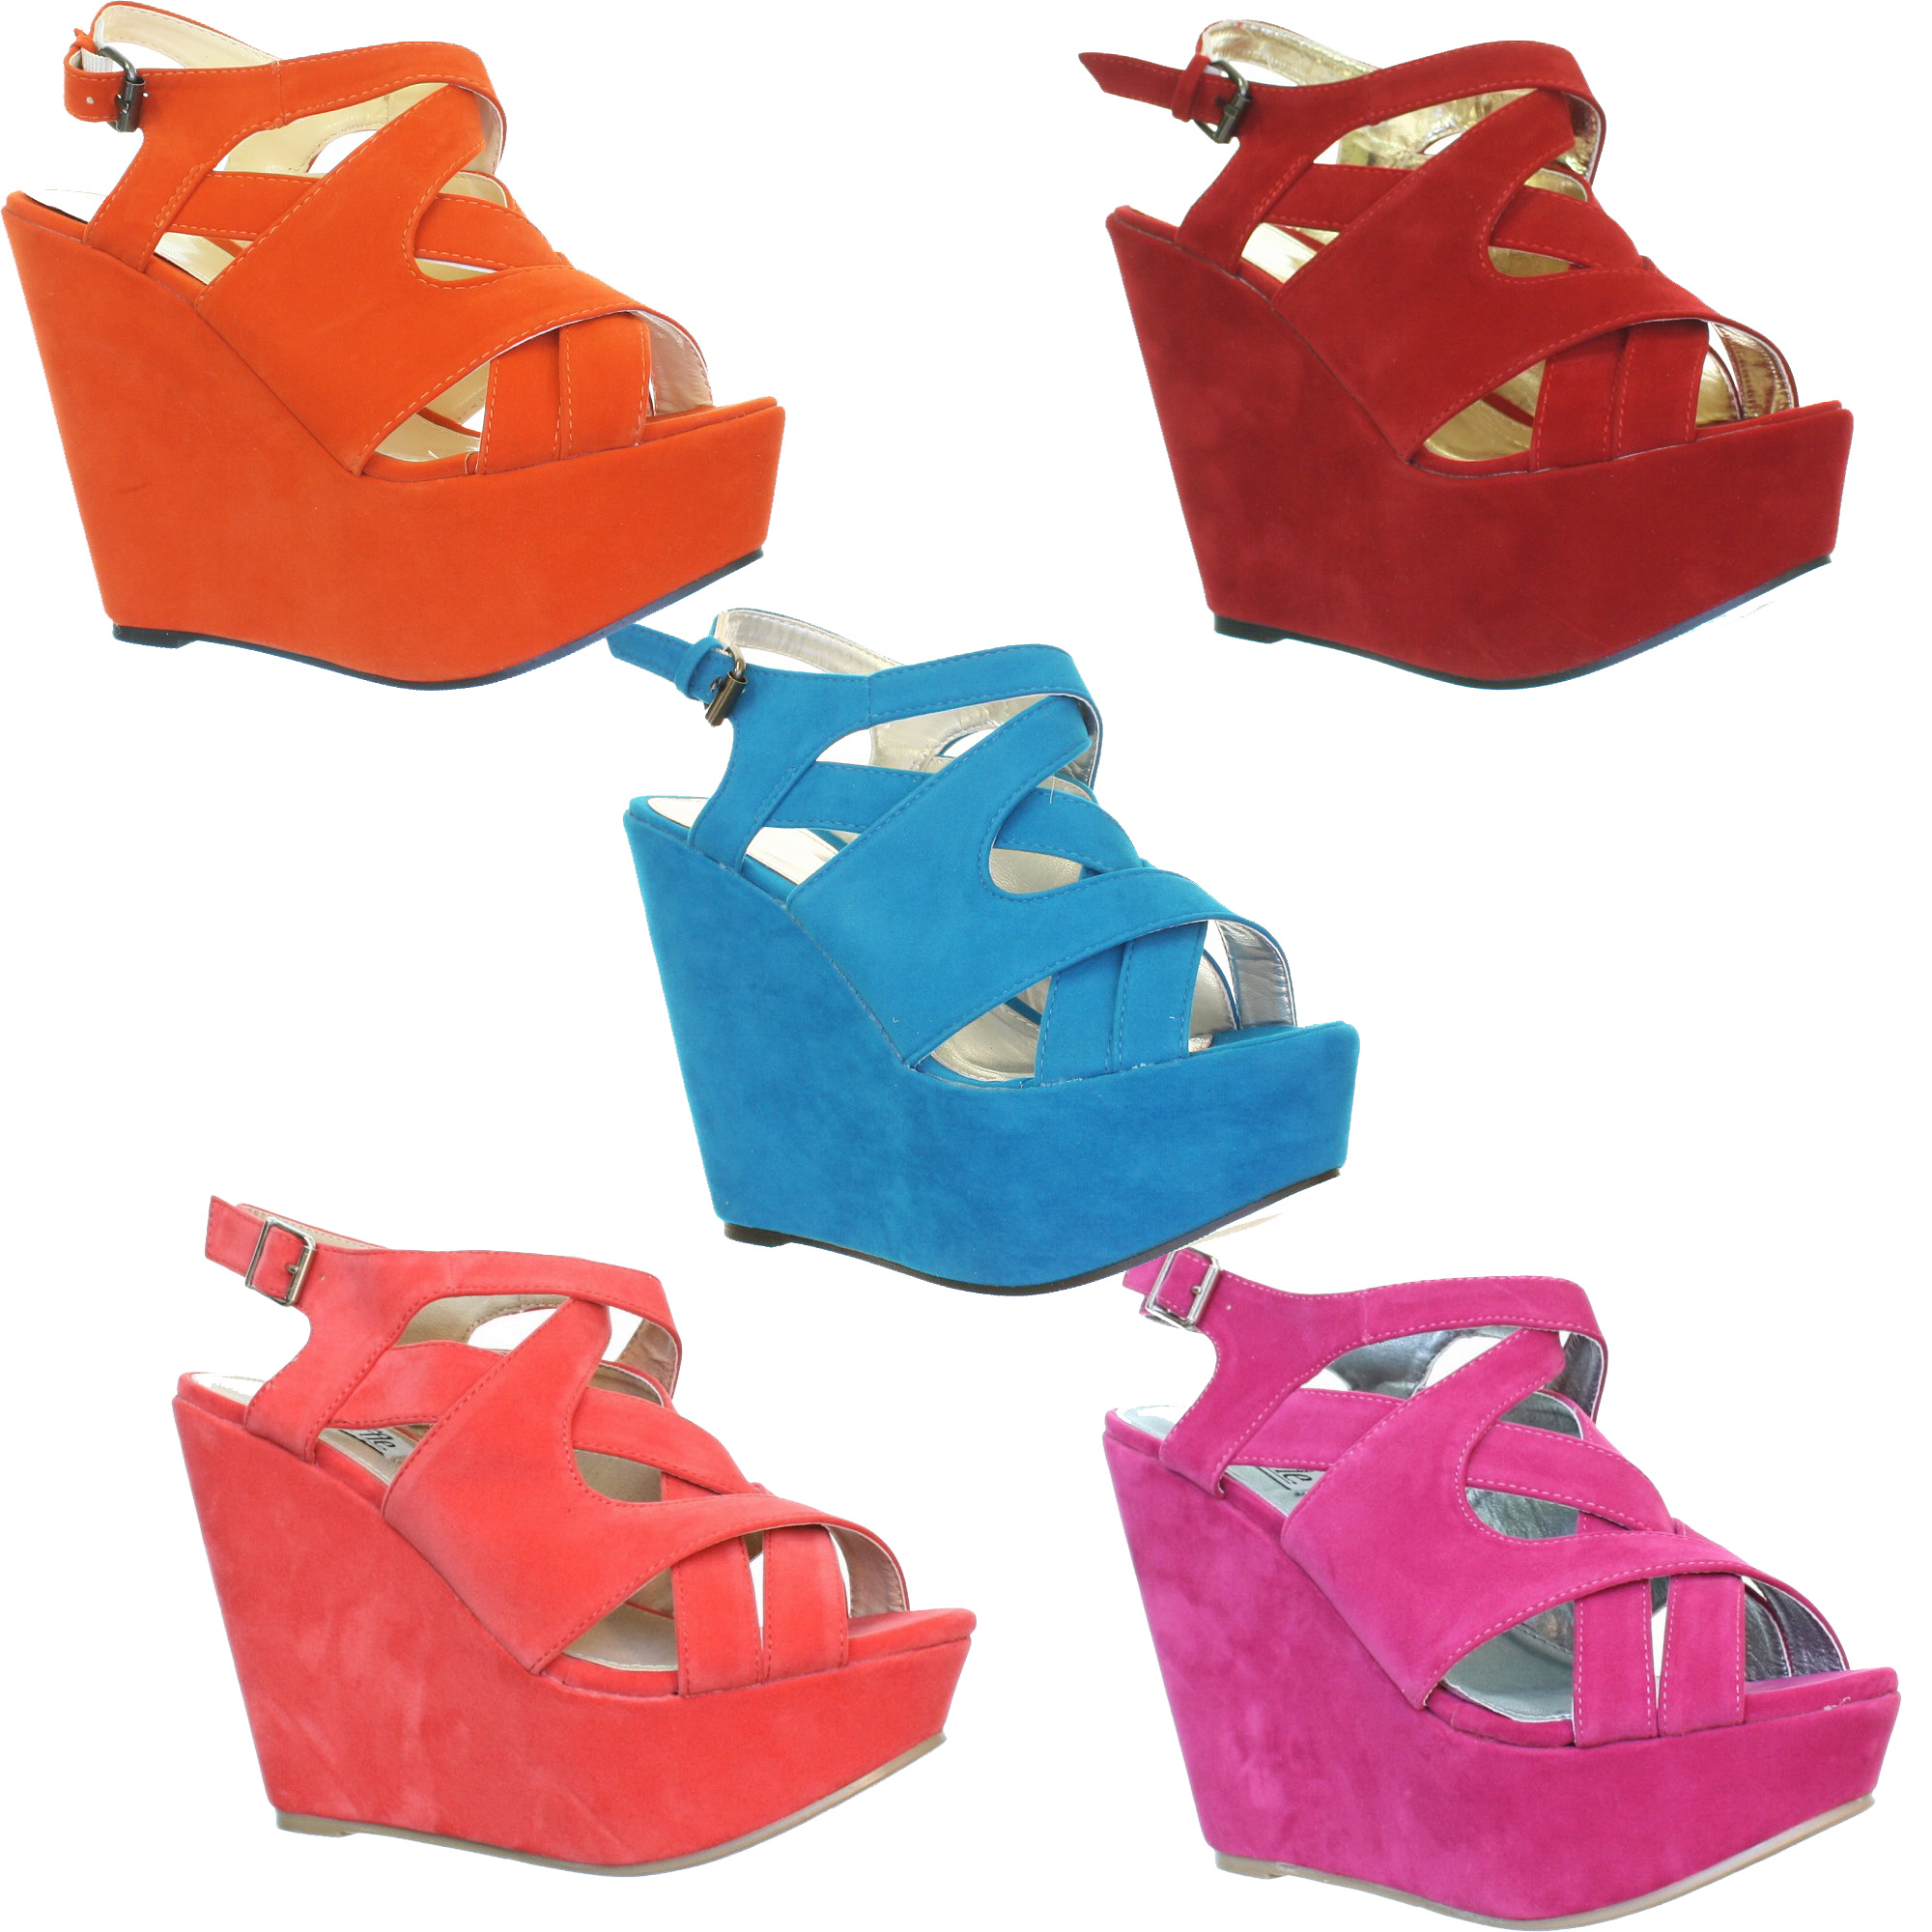 Wedge shoes for ladies